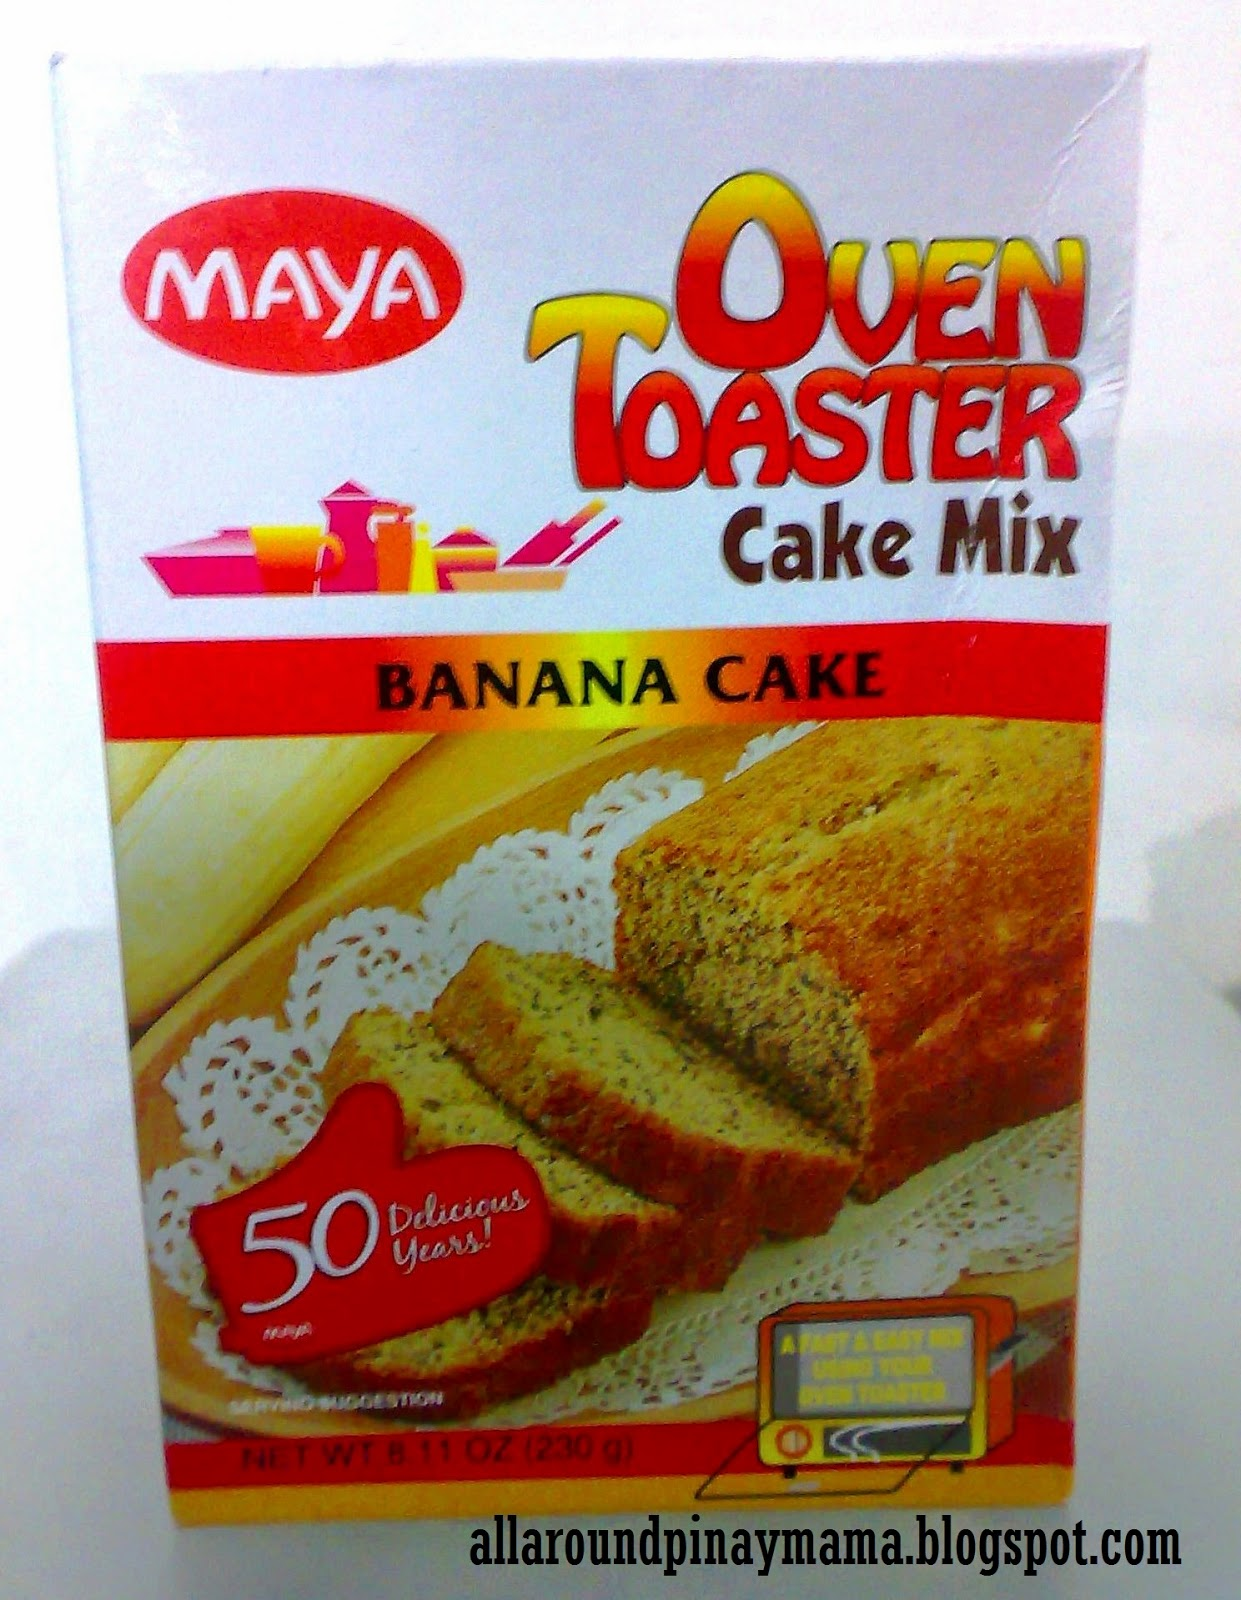 My quick and easy banana cake using maya oven toaster cake mix my quick and easy banana cake using maya oven toaster cake mix banana cake all around pinay mama forumfinder Images